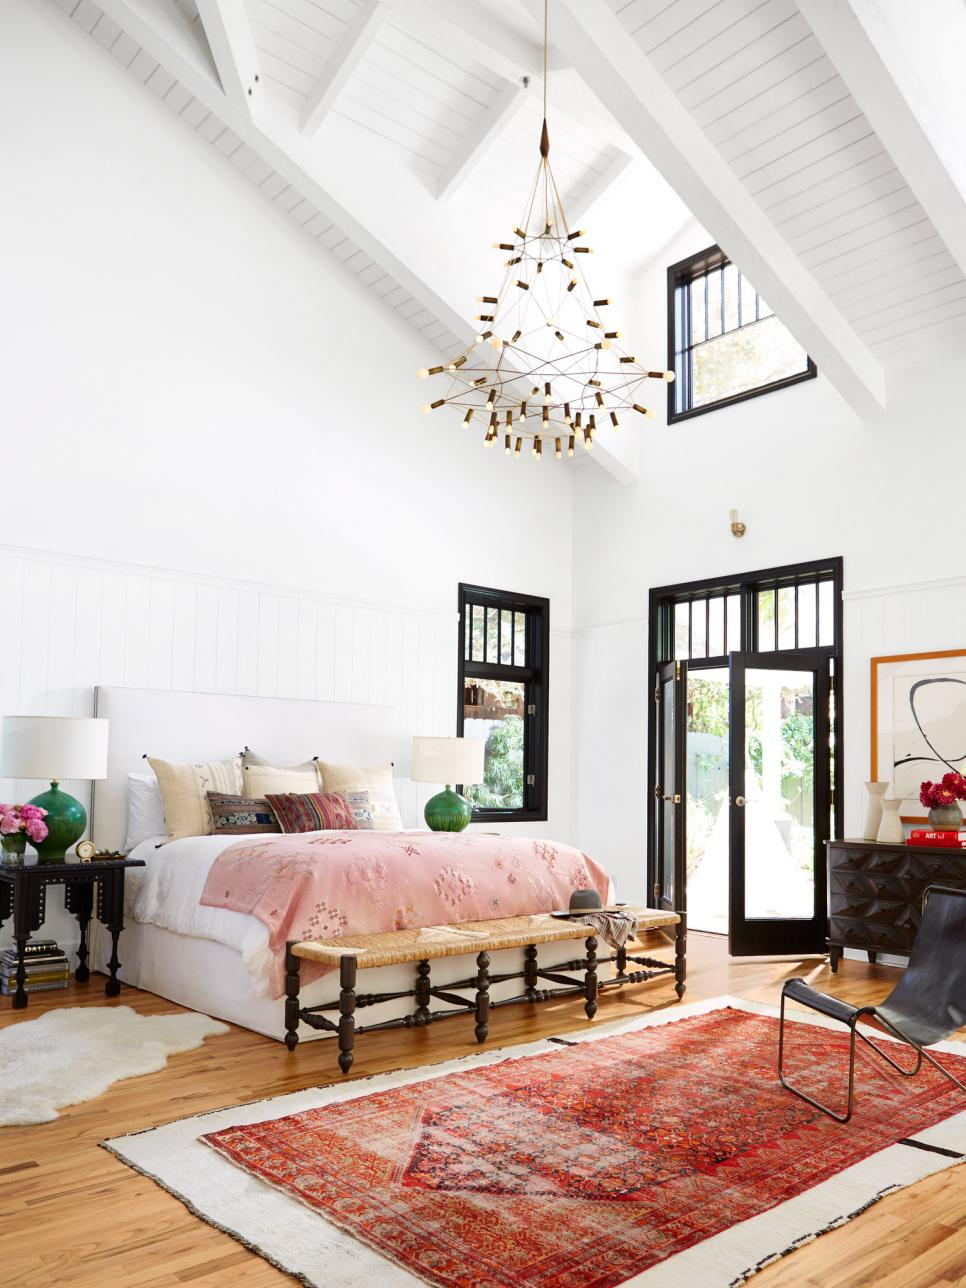 How to decorate around a bed: leave the walls blank! Let the architecture shine. // colorful bedroom, eclectic bedroom, pink bedroom, boho bedroom, bohemian eclectic bedroom